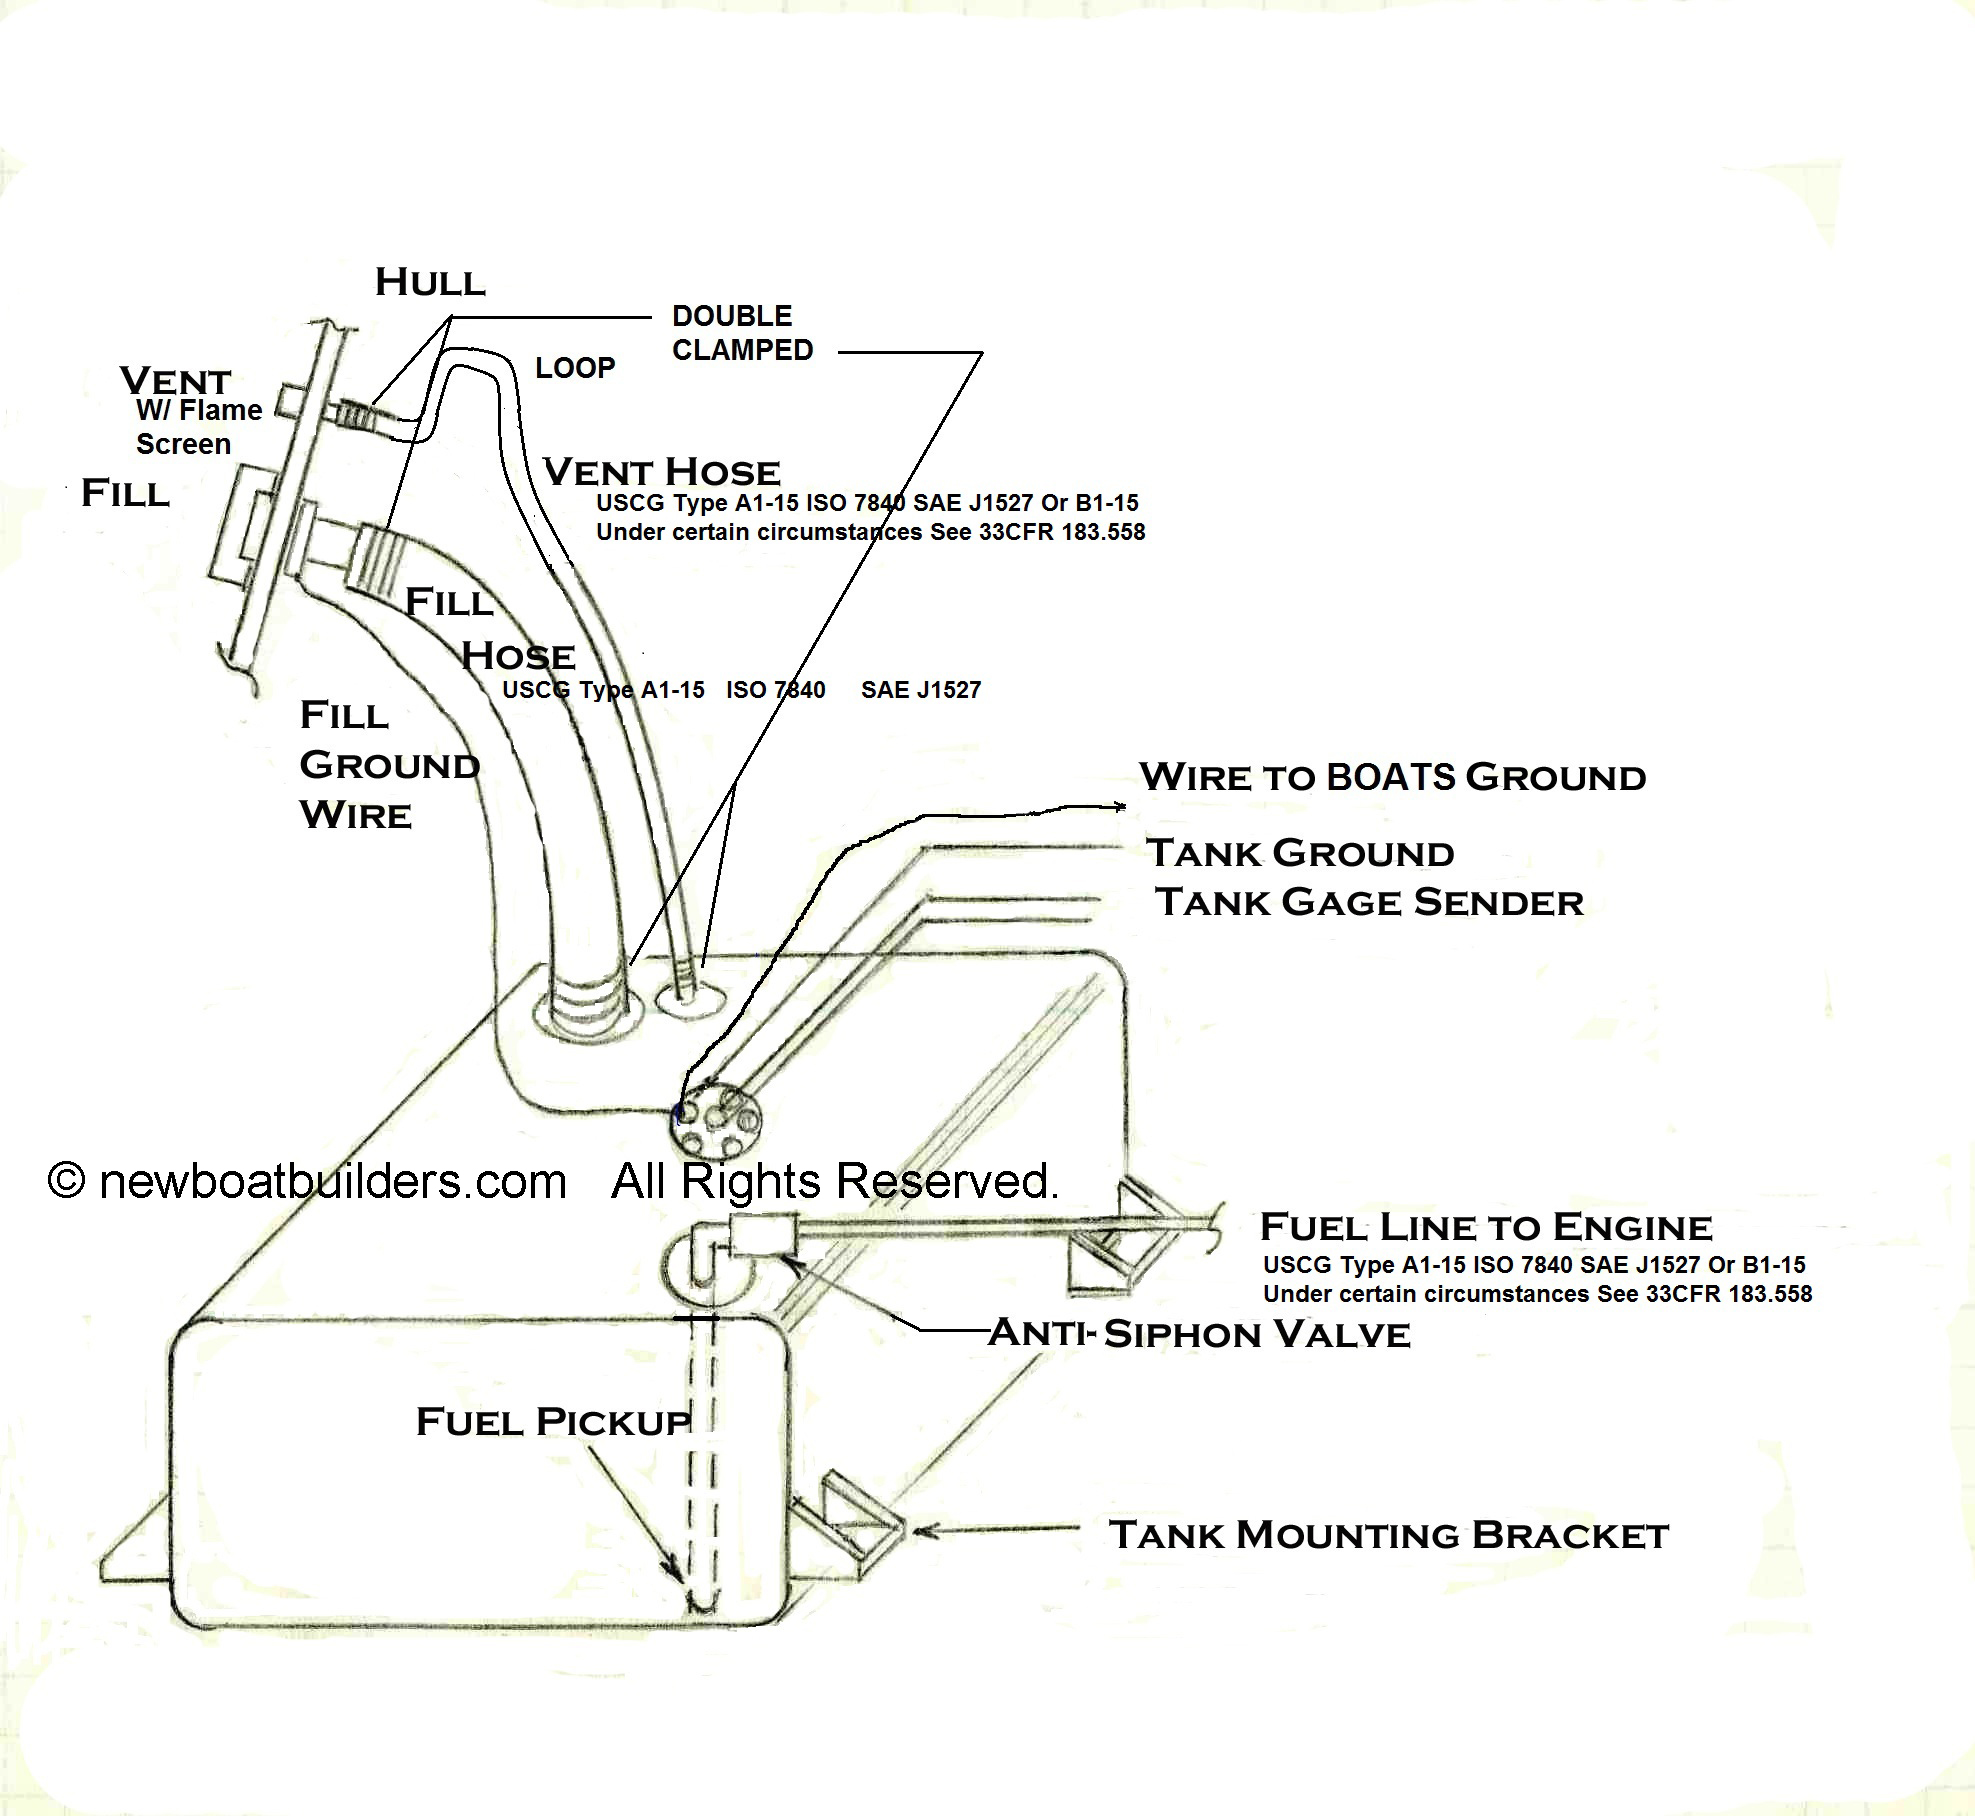 Fuel_Tank boat building regulations boat fuel system fuel tank diagram Trailer Wiring Diagram at webbmarketing.co